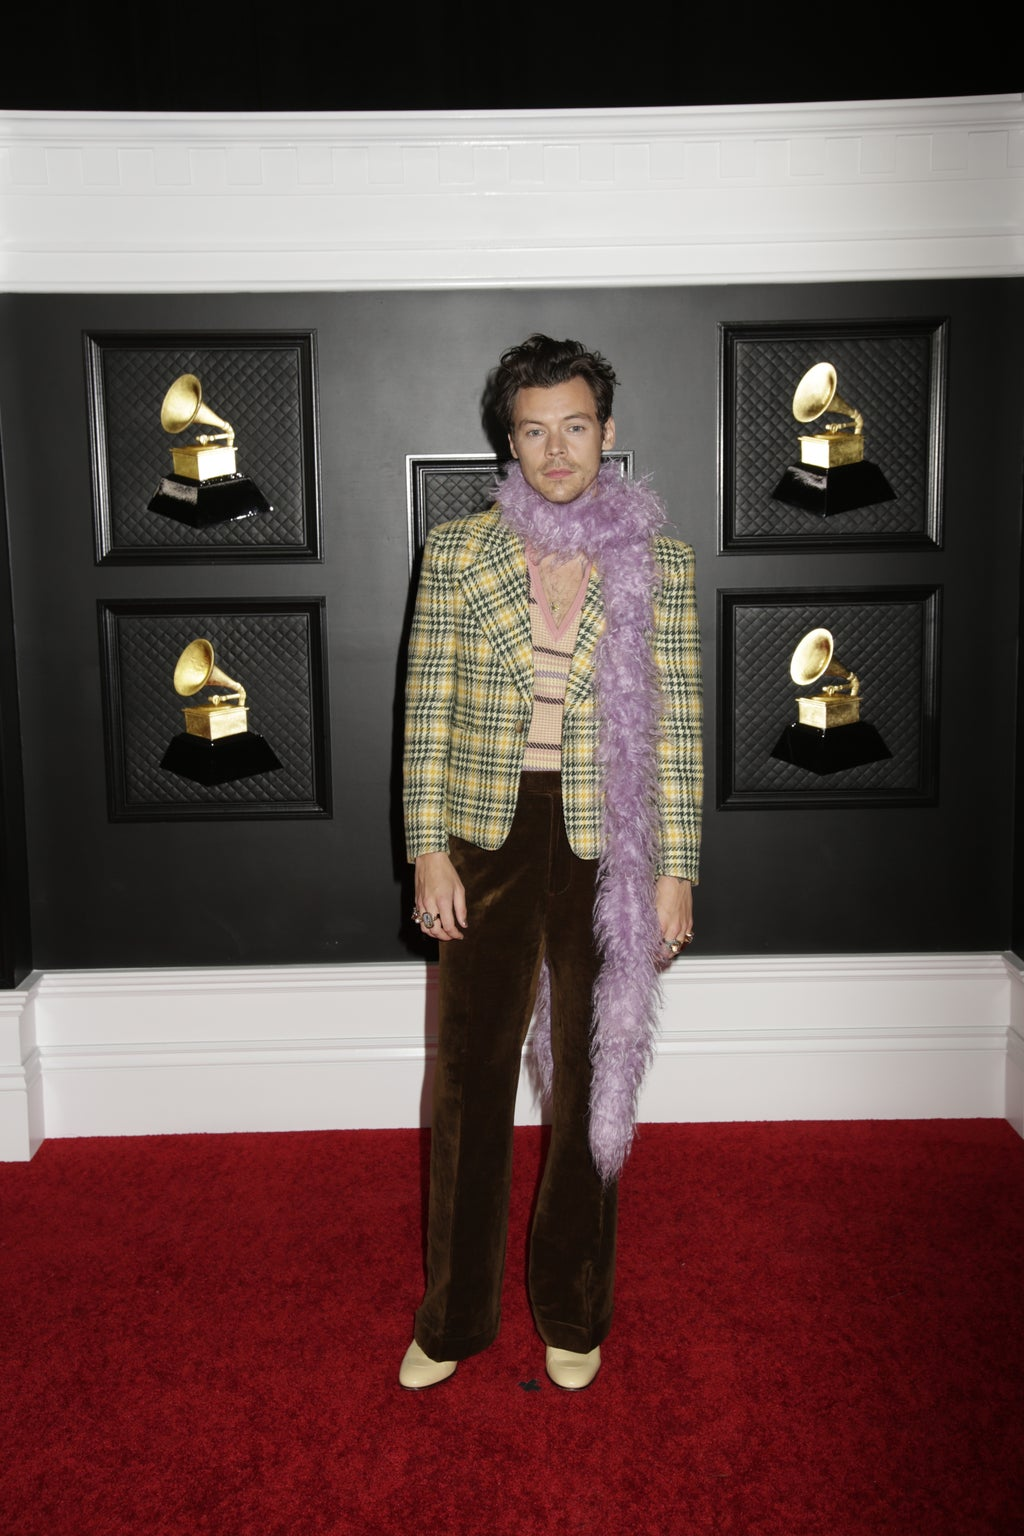 Harry Styles at the 2021 Grammy Awards Red Carpet